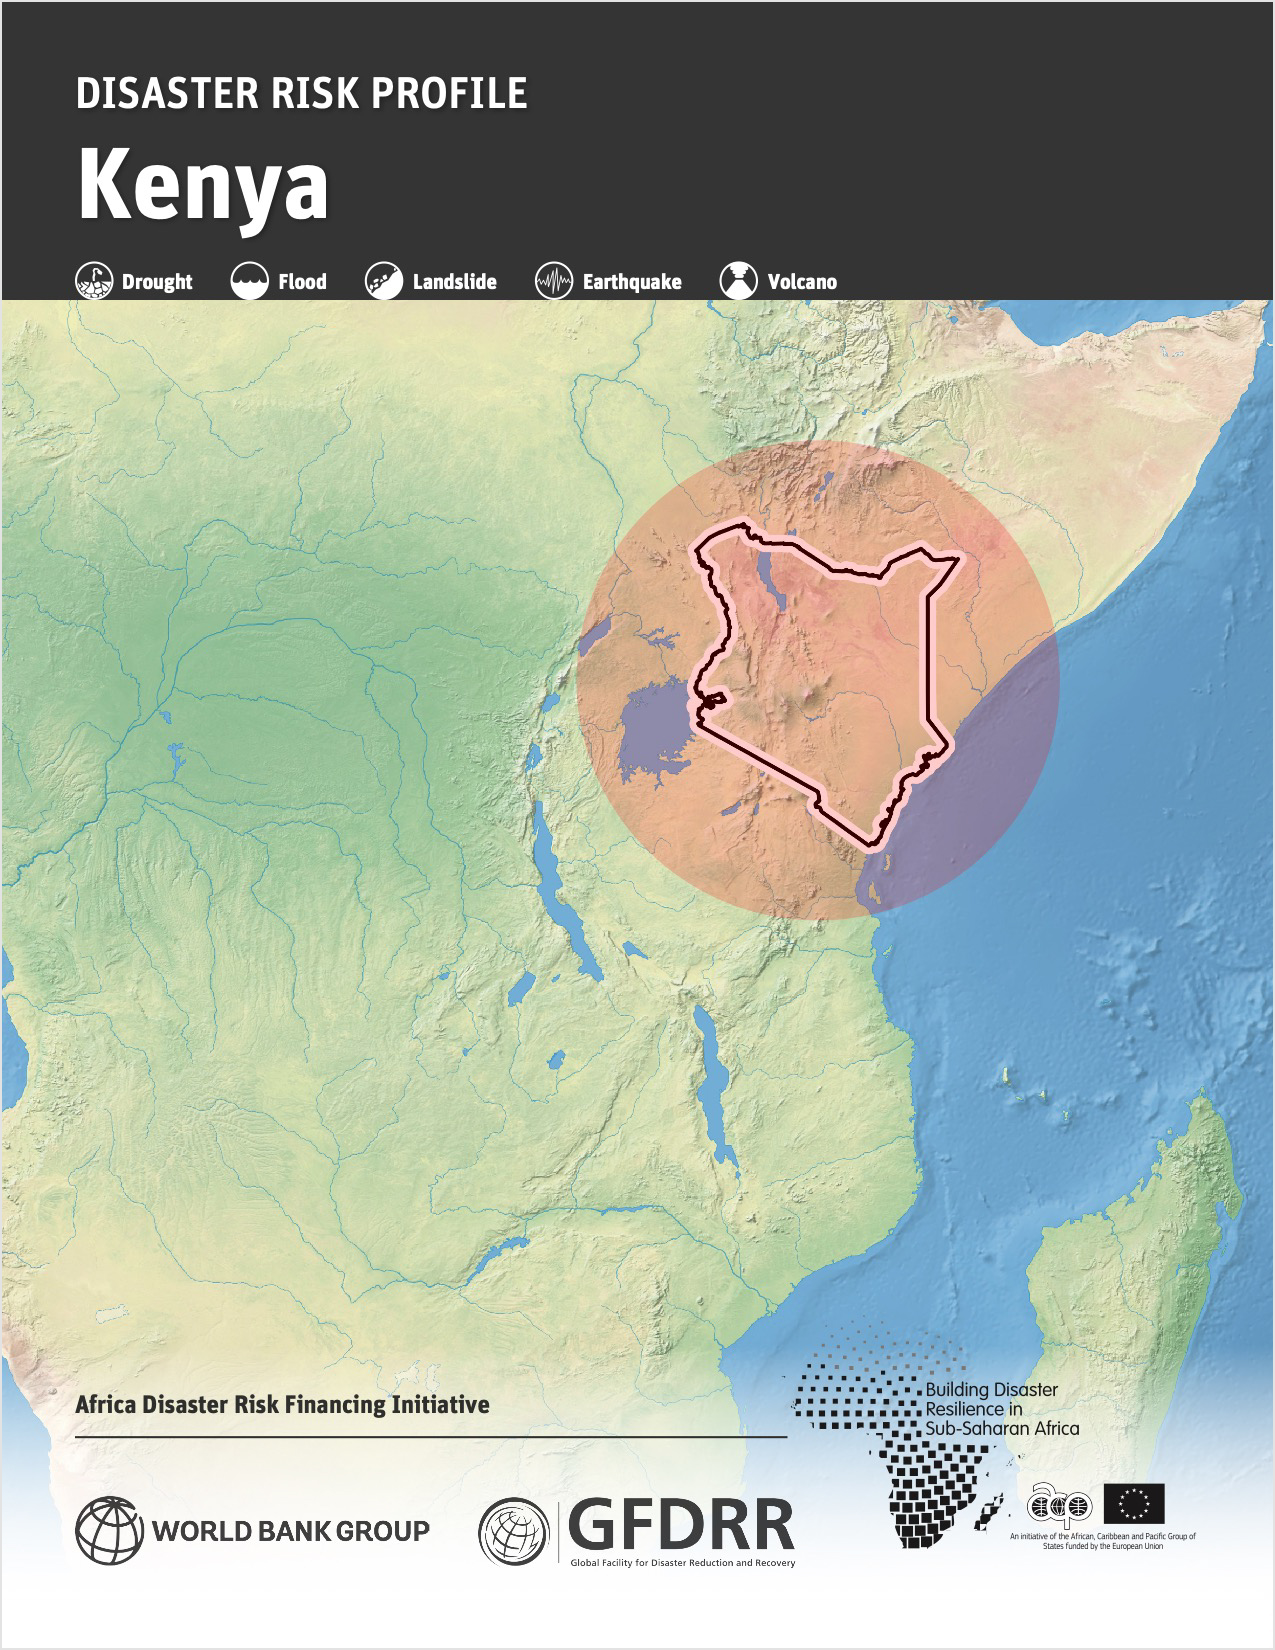 Disaster Risk Profile: Kenya